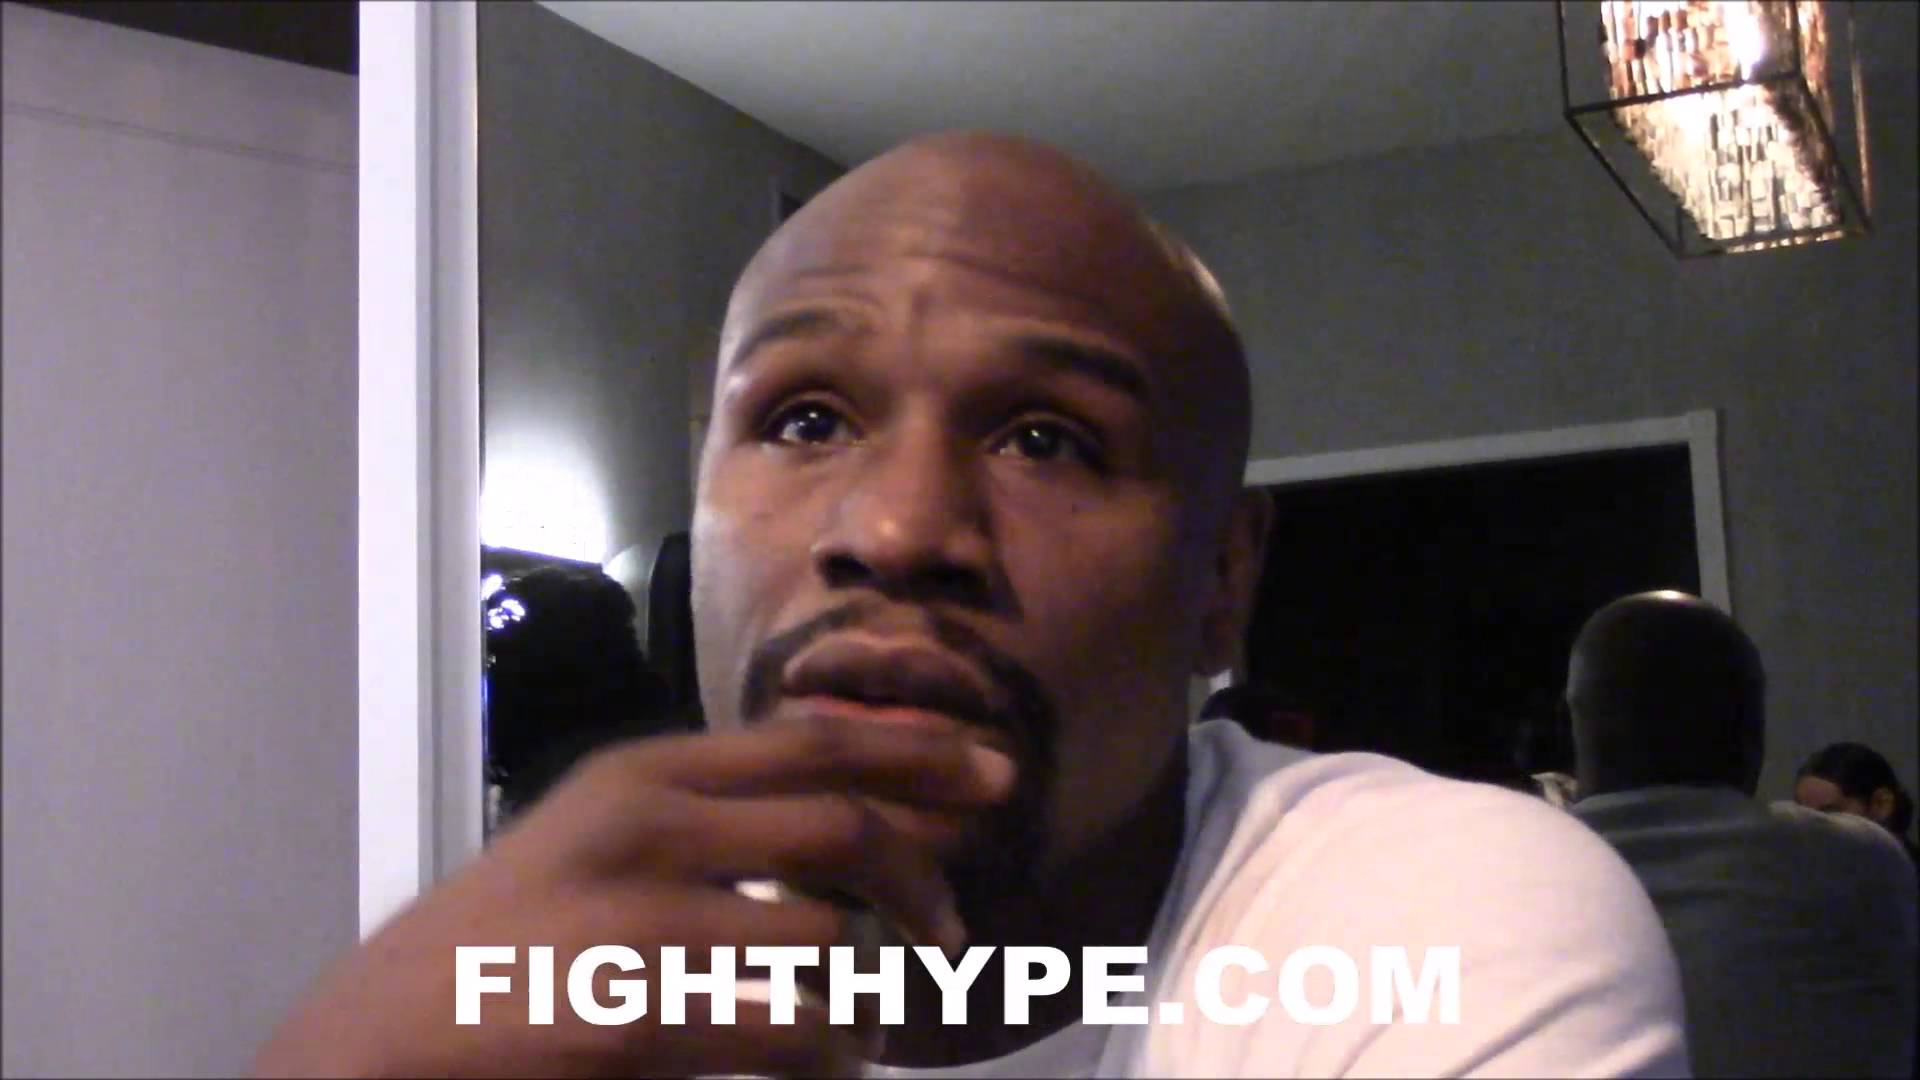 Floyd Mayweather Responds To Conor McGregor's Racism Comments